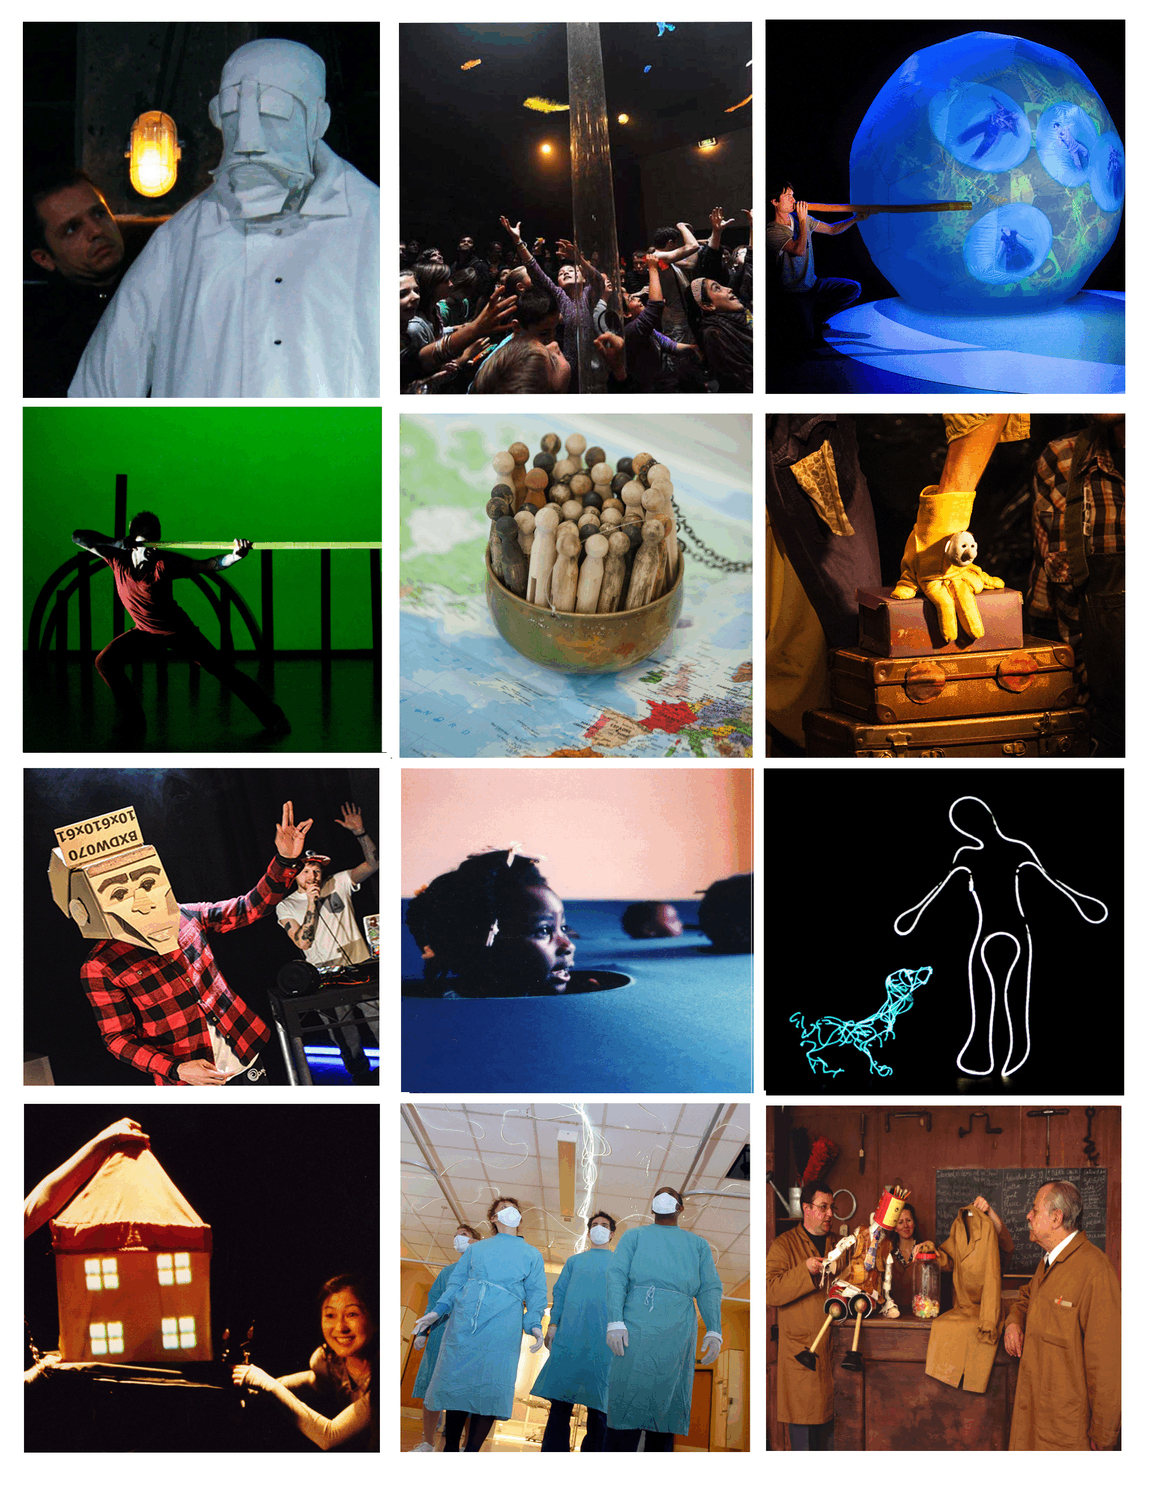 series of 12 images from different productions including a Saltman puppet, yellow gloveman puppet and a young girl with head poking out of fabric